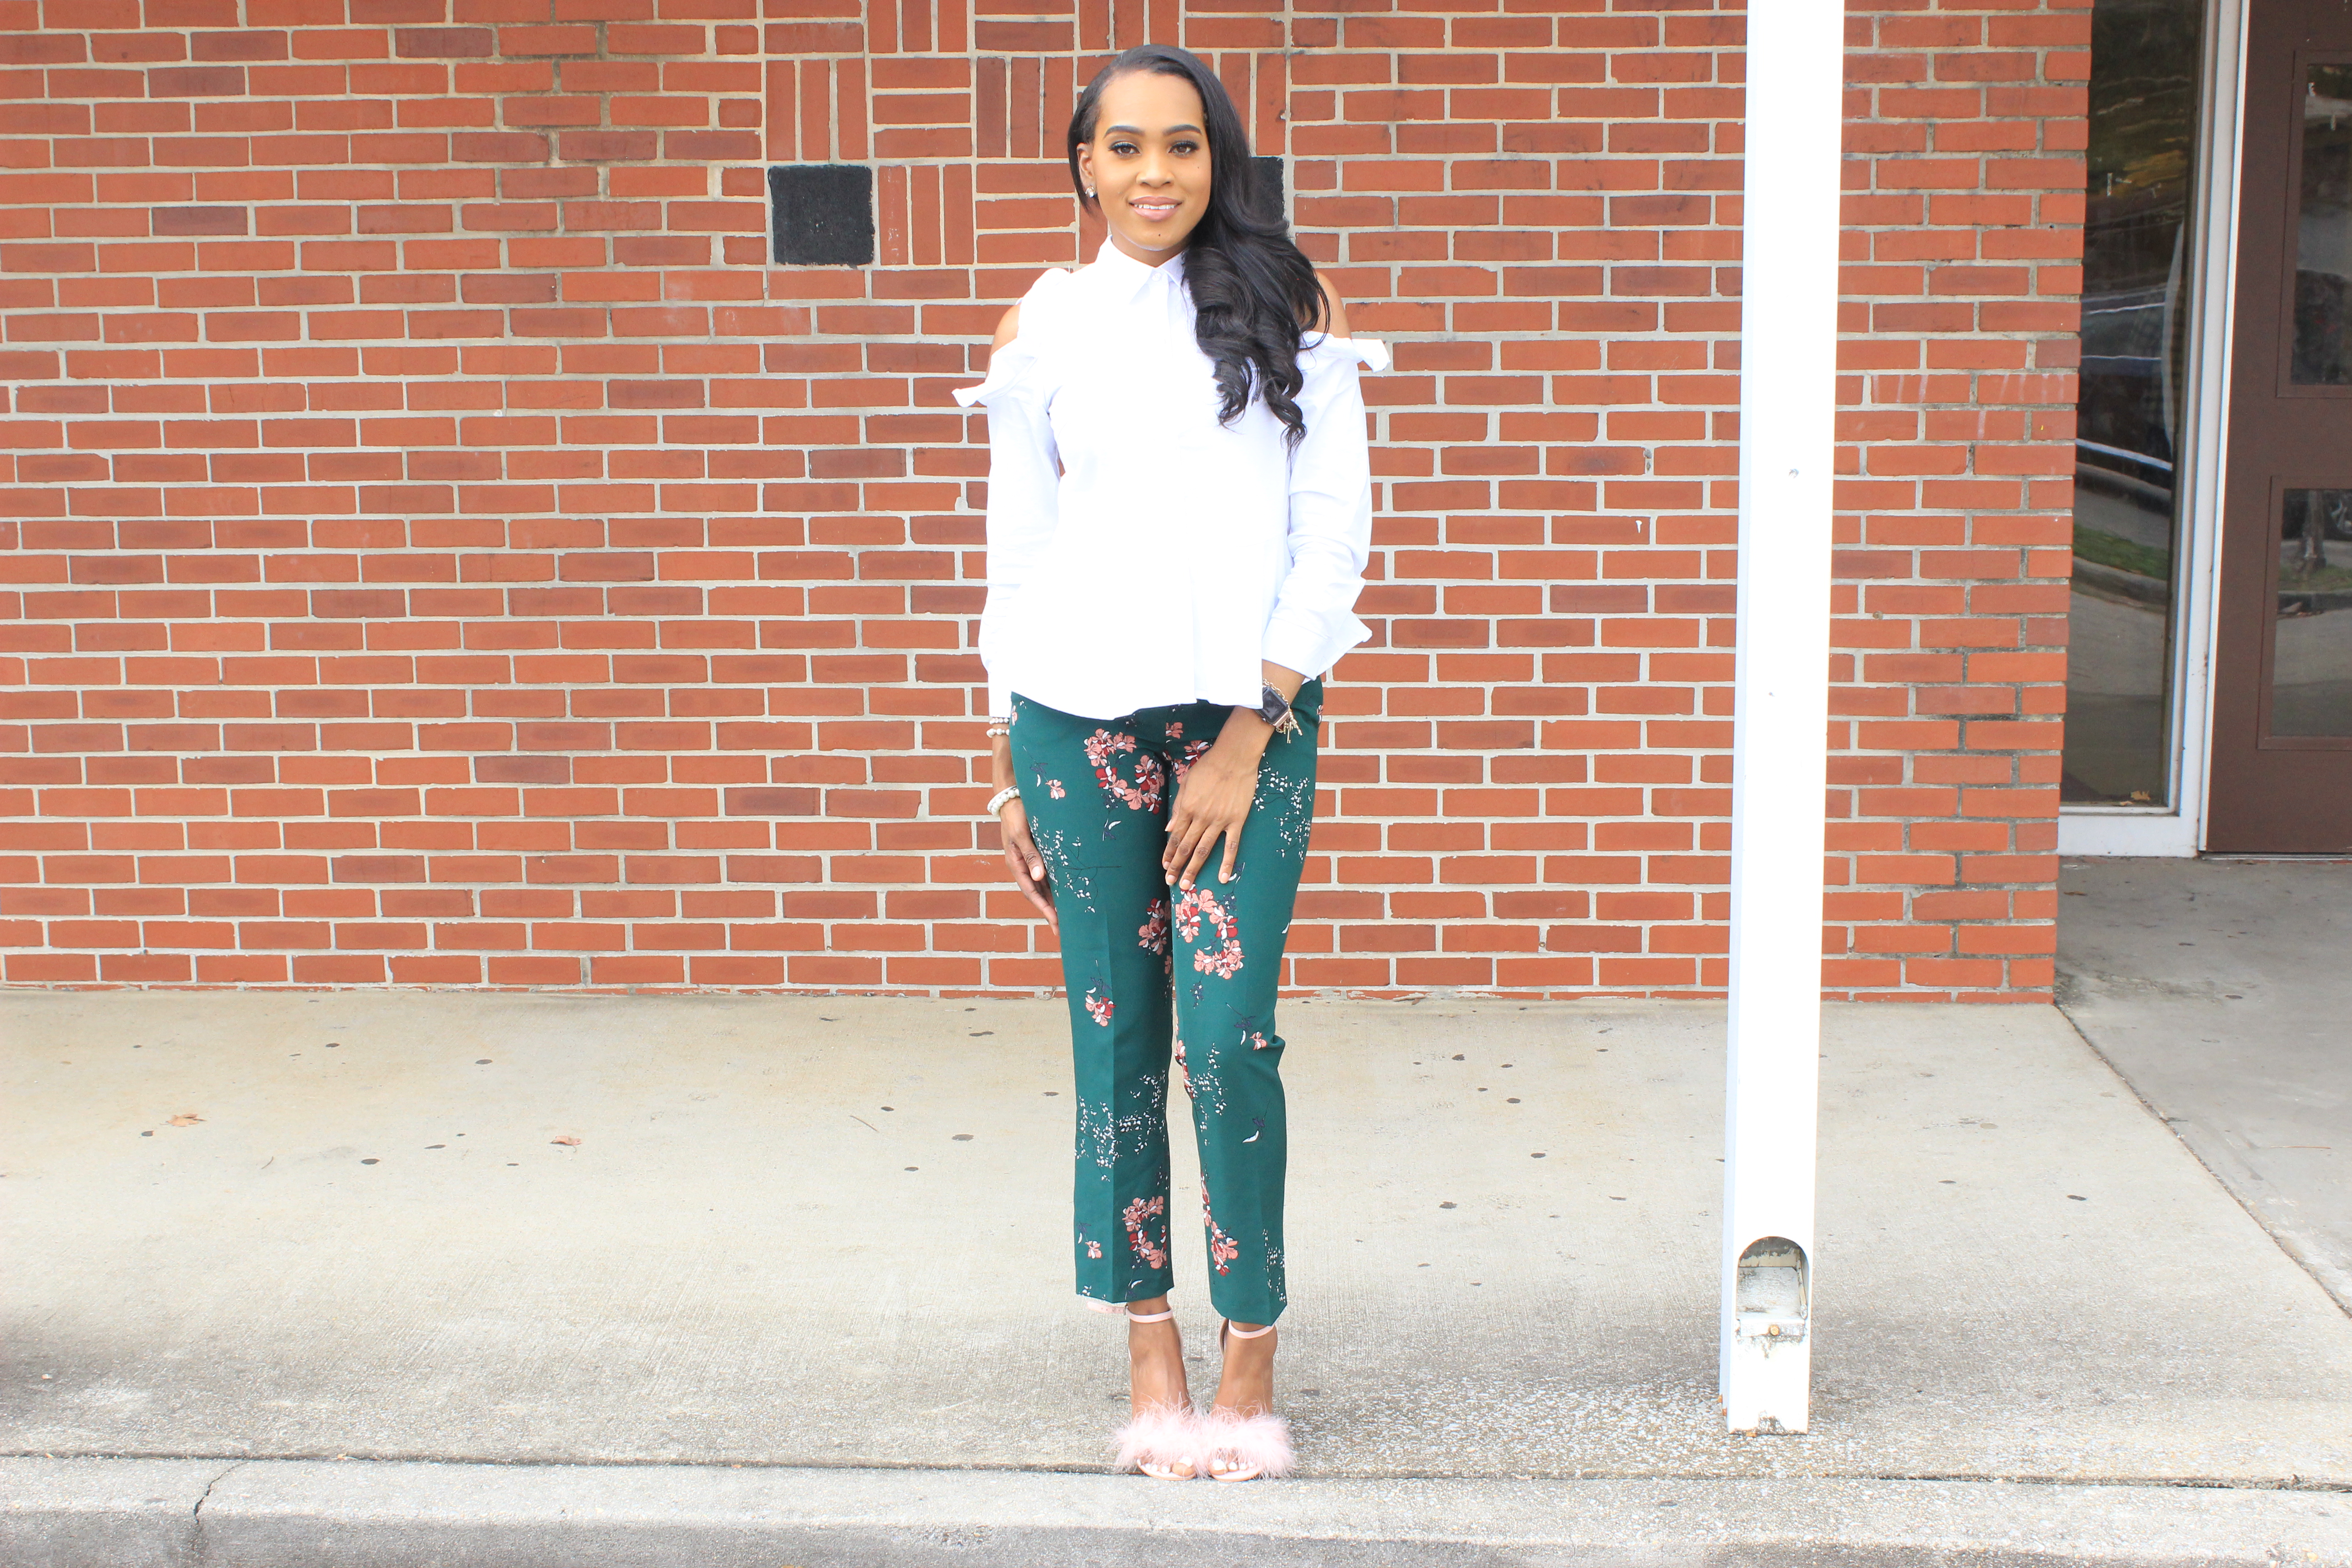 Style-files-Green-floral-printed-ankle-length-carolina-belle-montreal-pants-white-cold-shoulder-ruffle-peplum-blouse-pink-faux-fur-glitter-block-heel-missguided-ankle-strap-sandals-oohlalablog-17